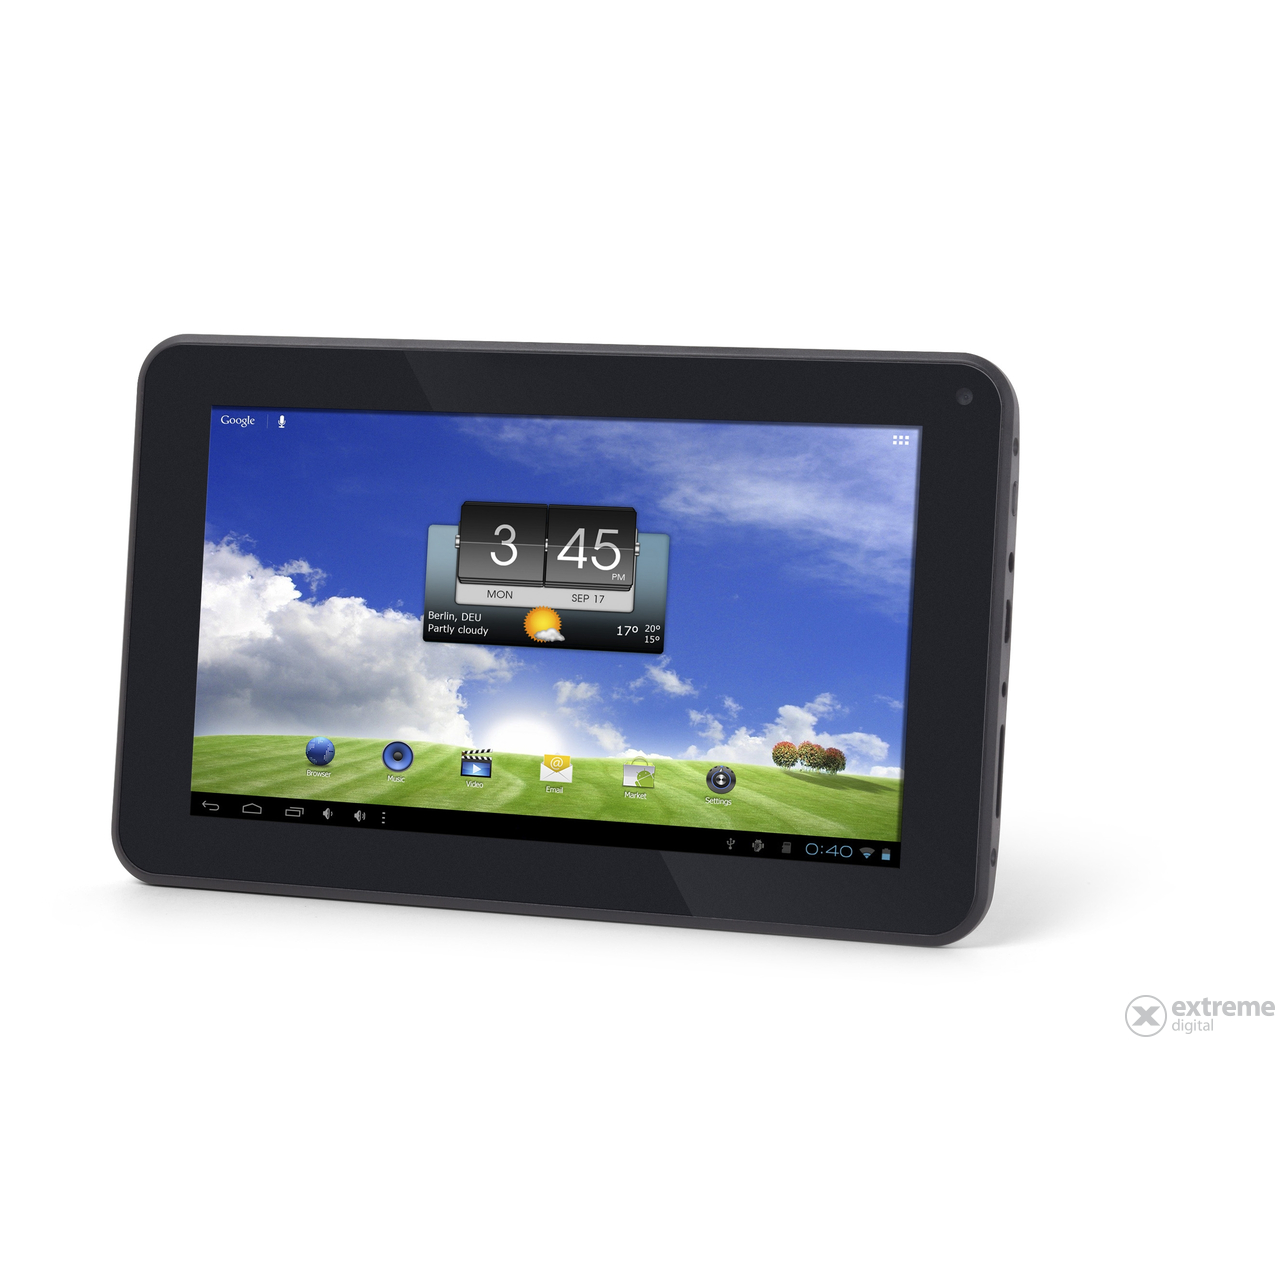 dps-dream-7-tablet-android_2e103bef.jpg